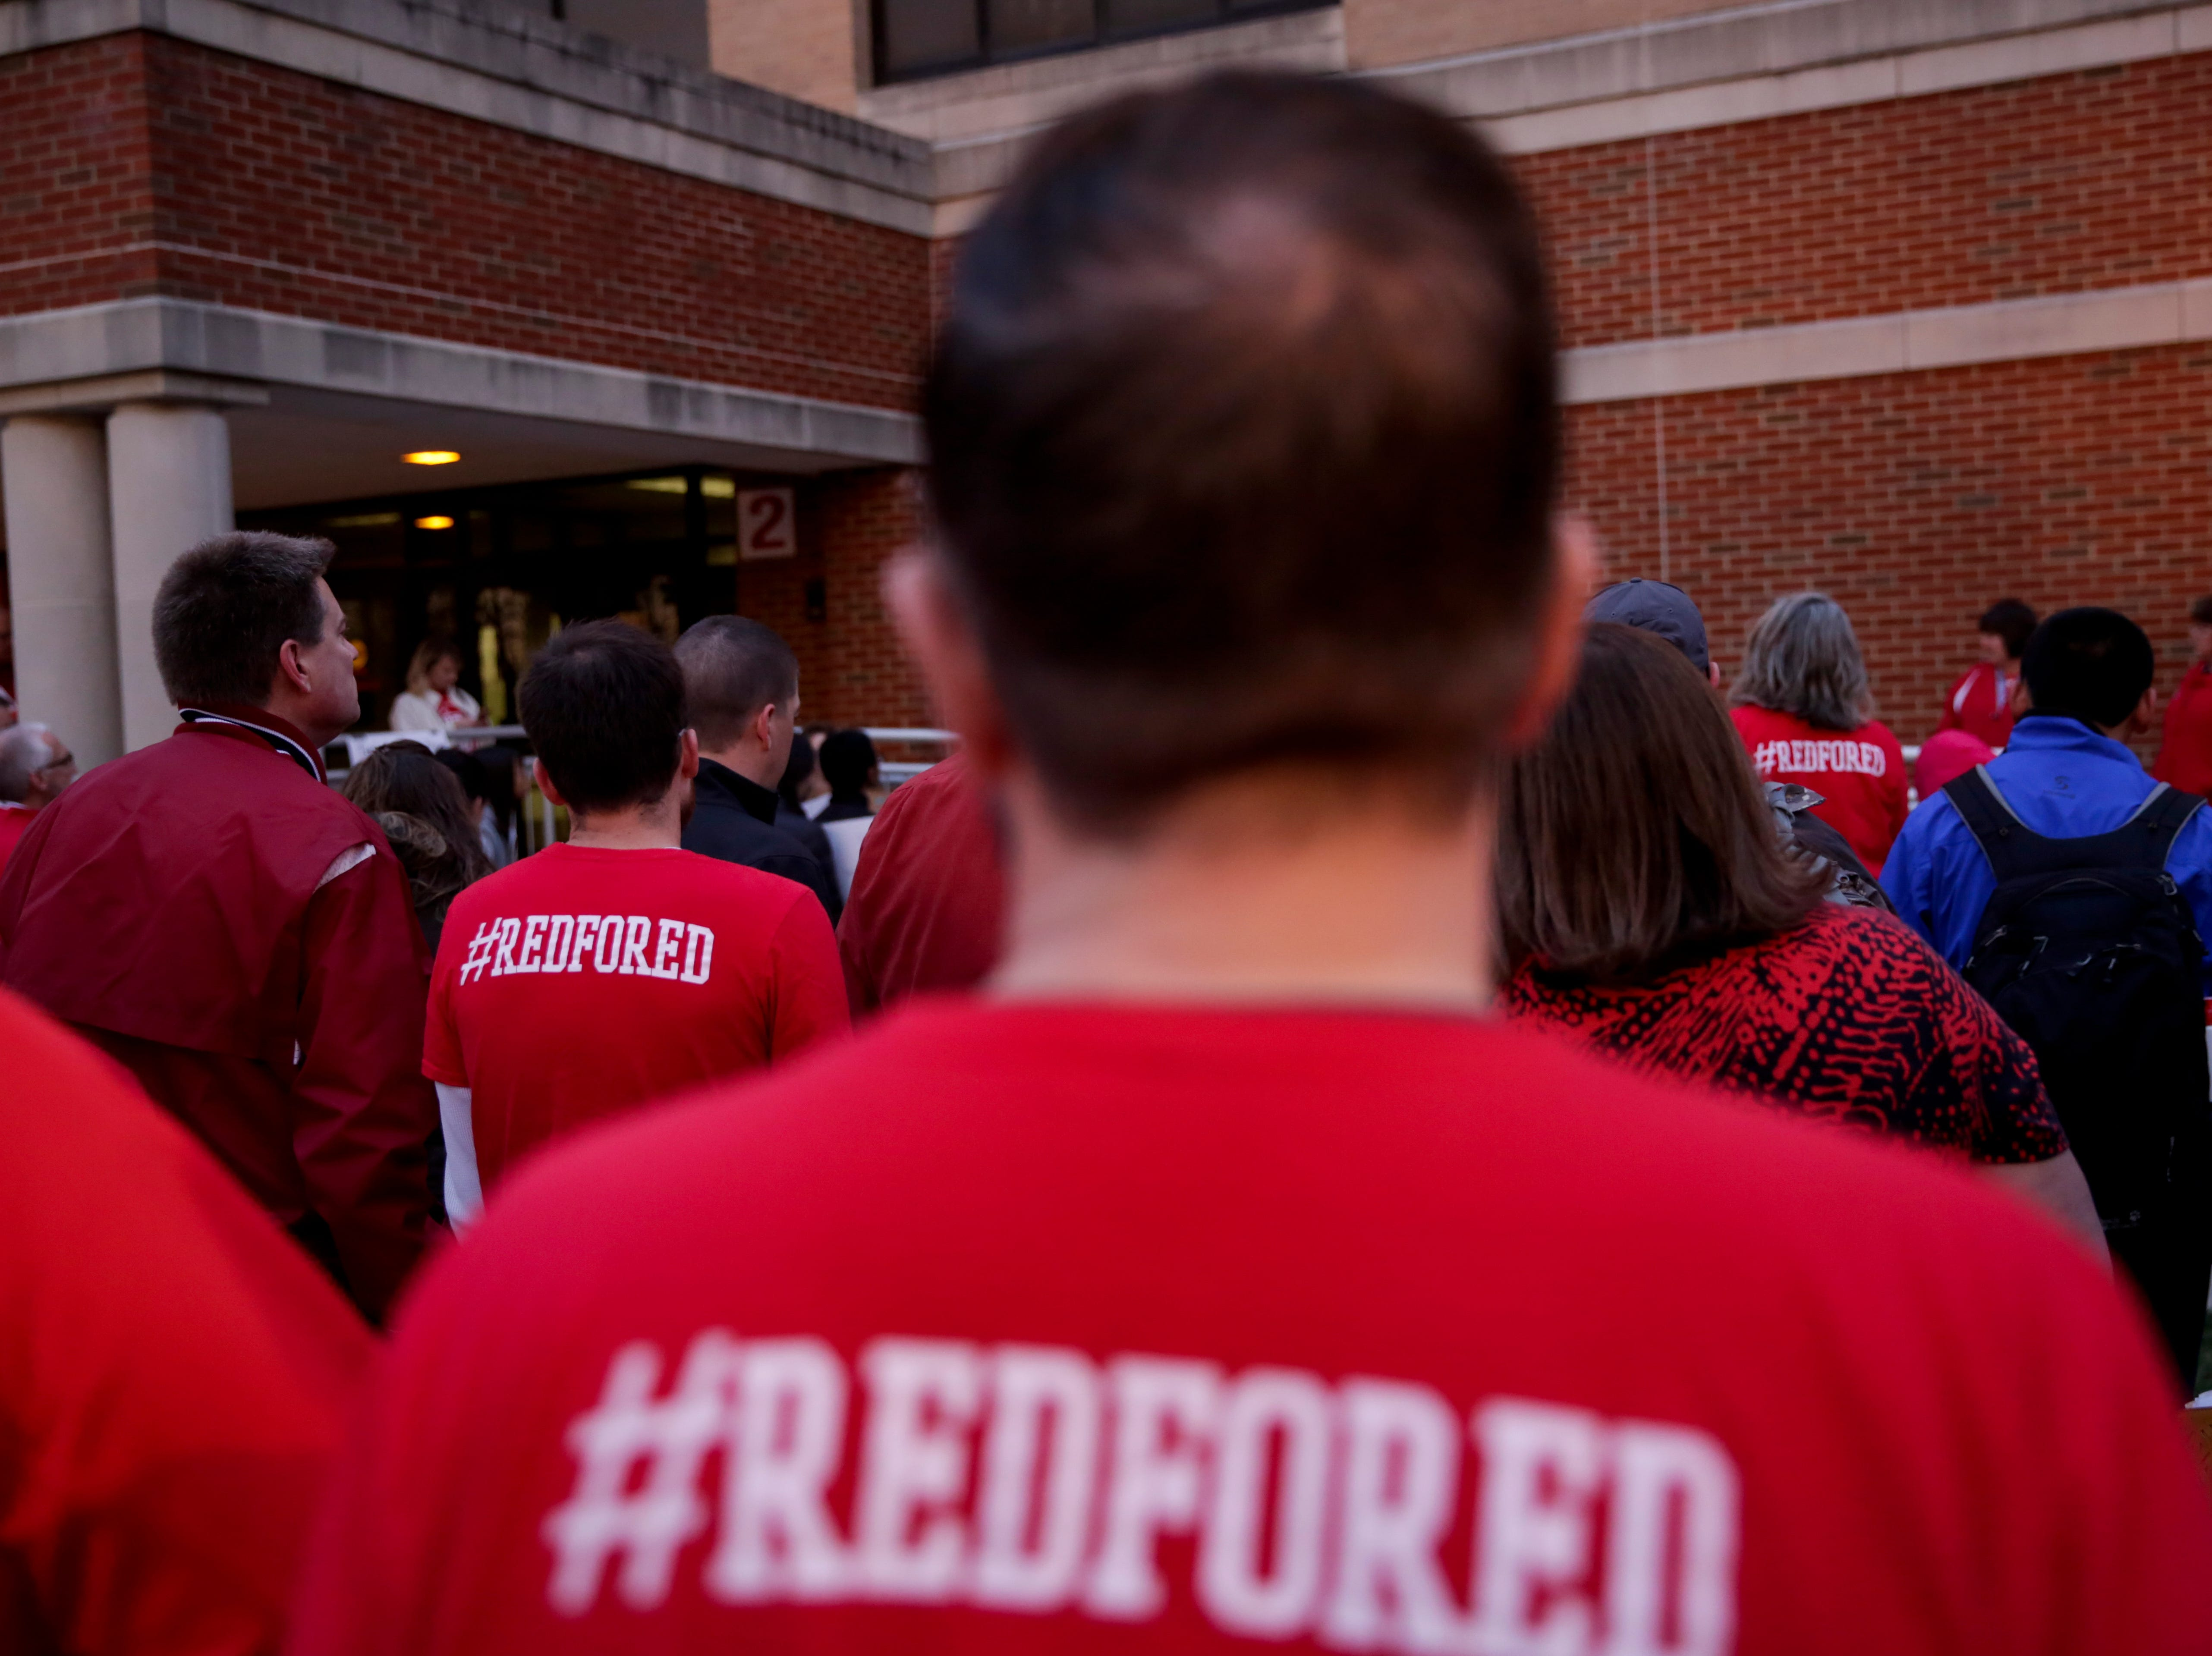 Community members and teachers gather outside of West Lafayette Jr./Sr. High School before walking into school to demand teacher salary raises, Wednesday, April 10, 2019, in West Lafayette. Greater Lafayette teachers and community members gathered outside schools before walking in to demand teacher salary raises.(Nikos Frazier   Journal & Courier)